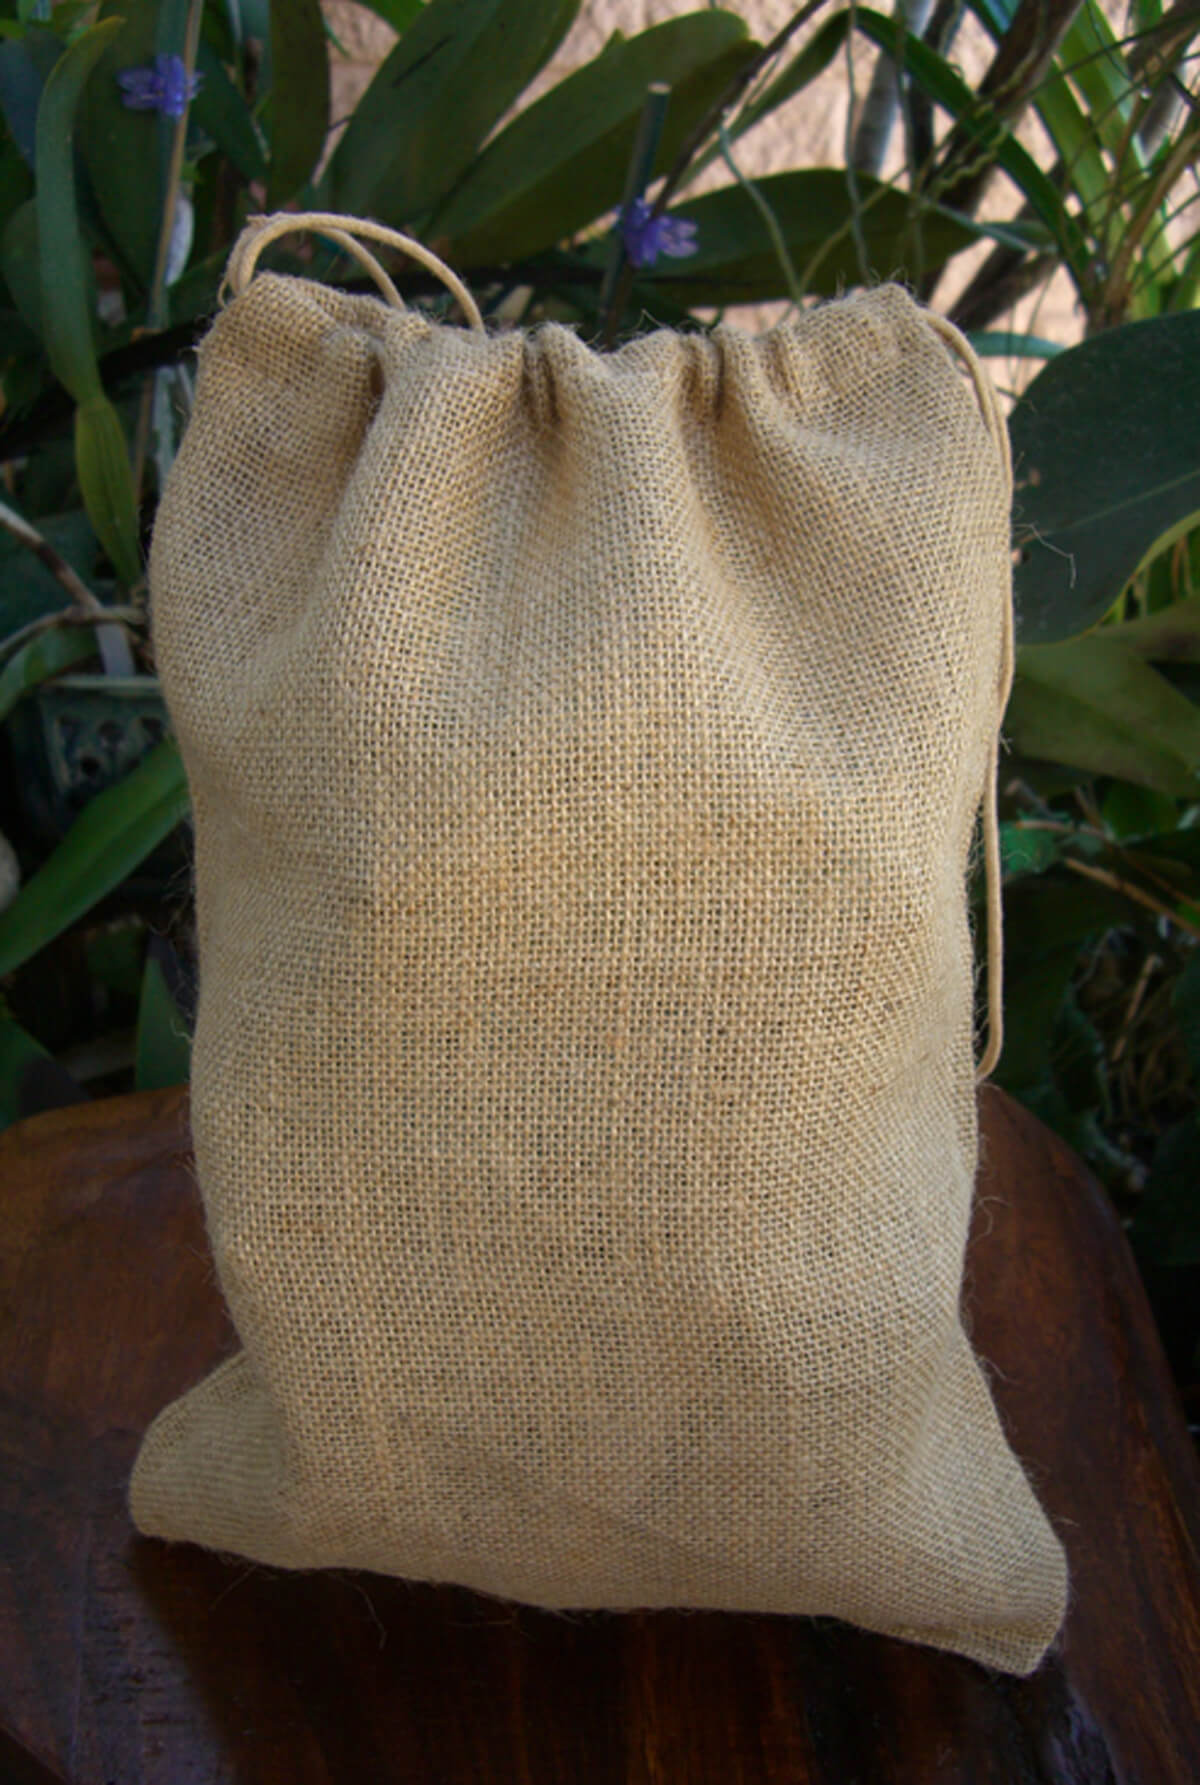 Burlap Bags with Drawstring 10x14 (Pack of 12)